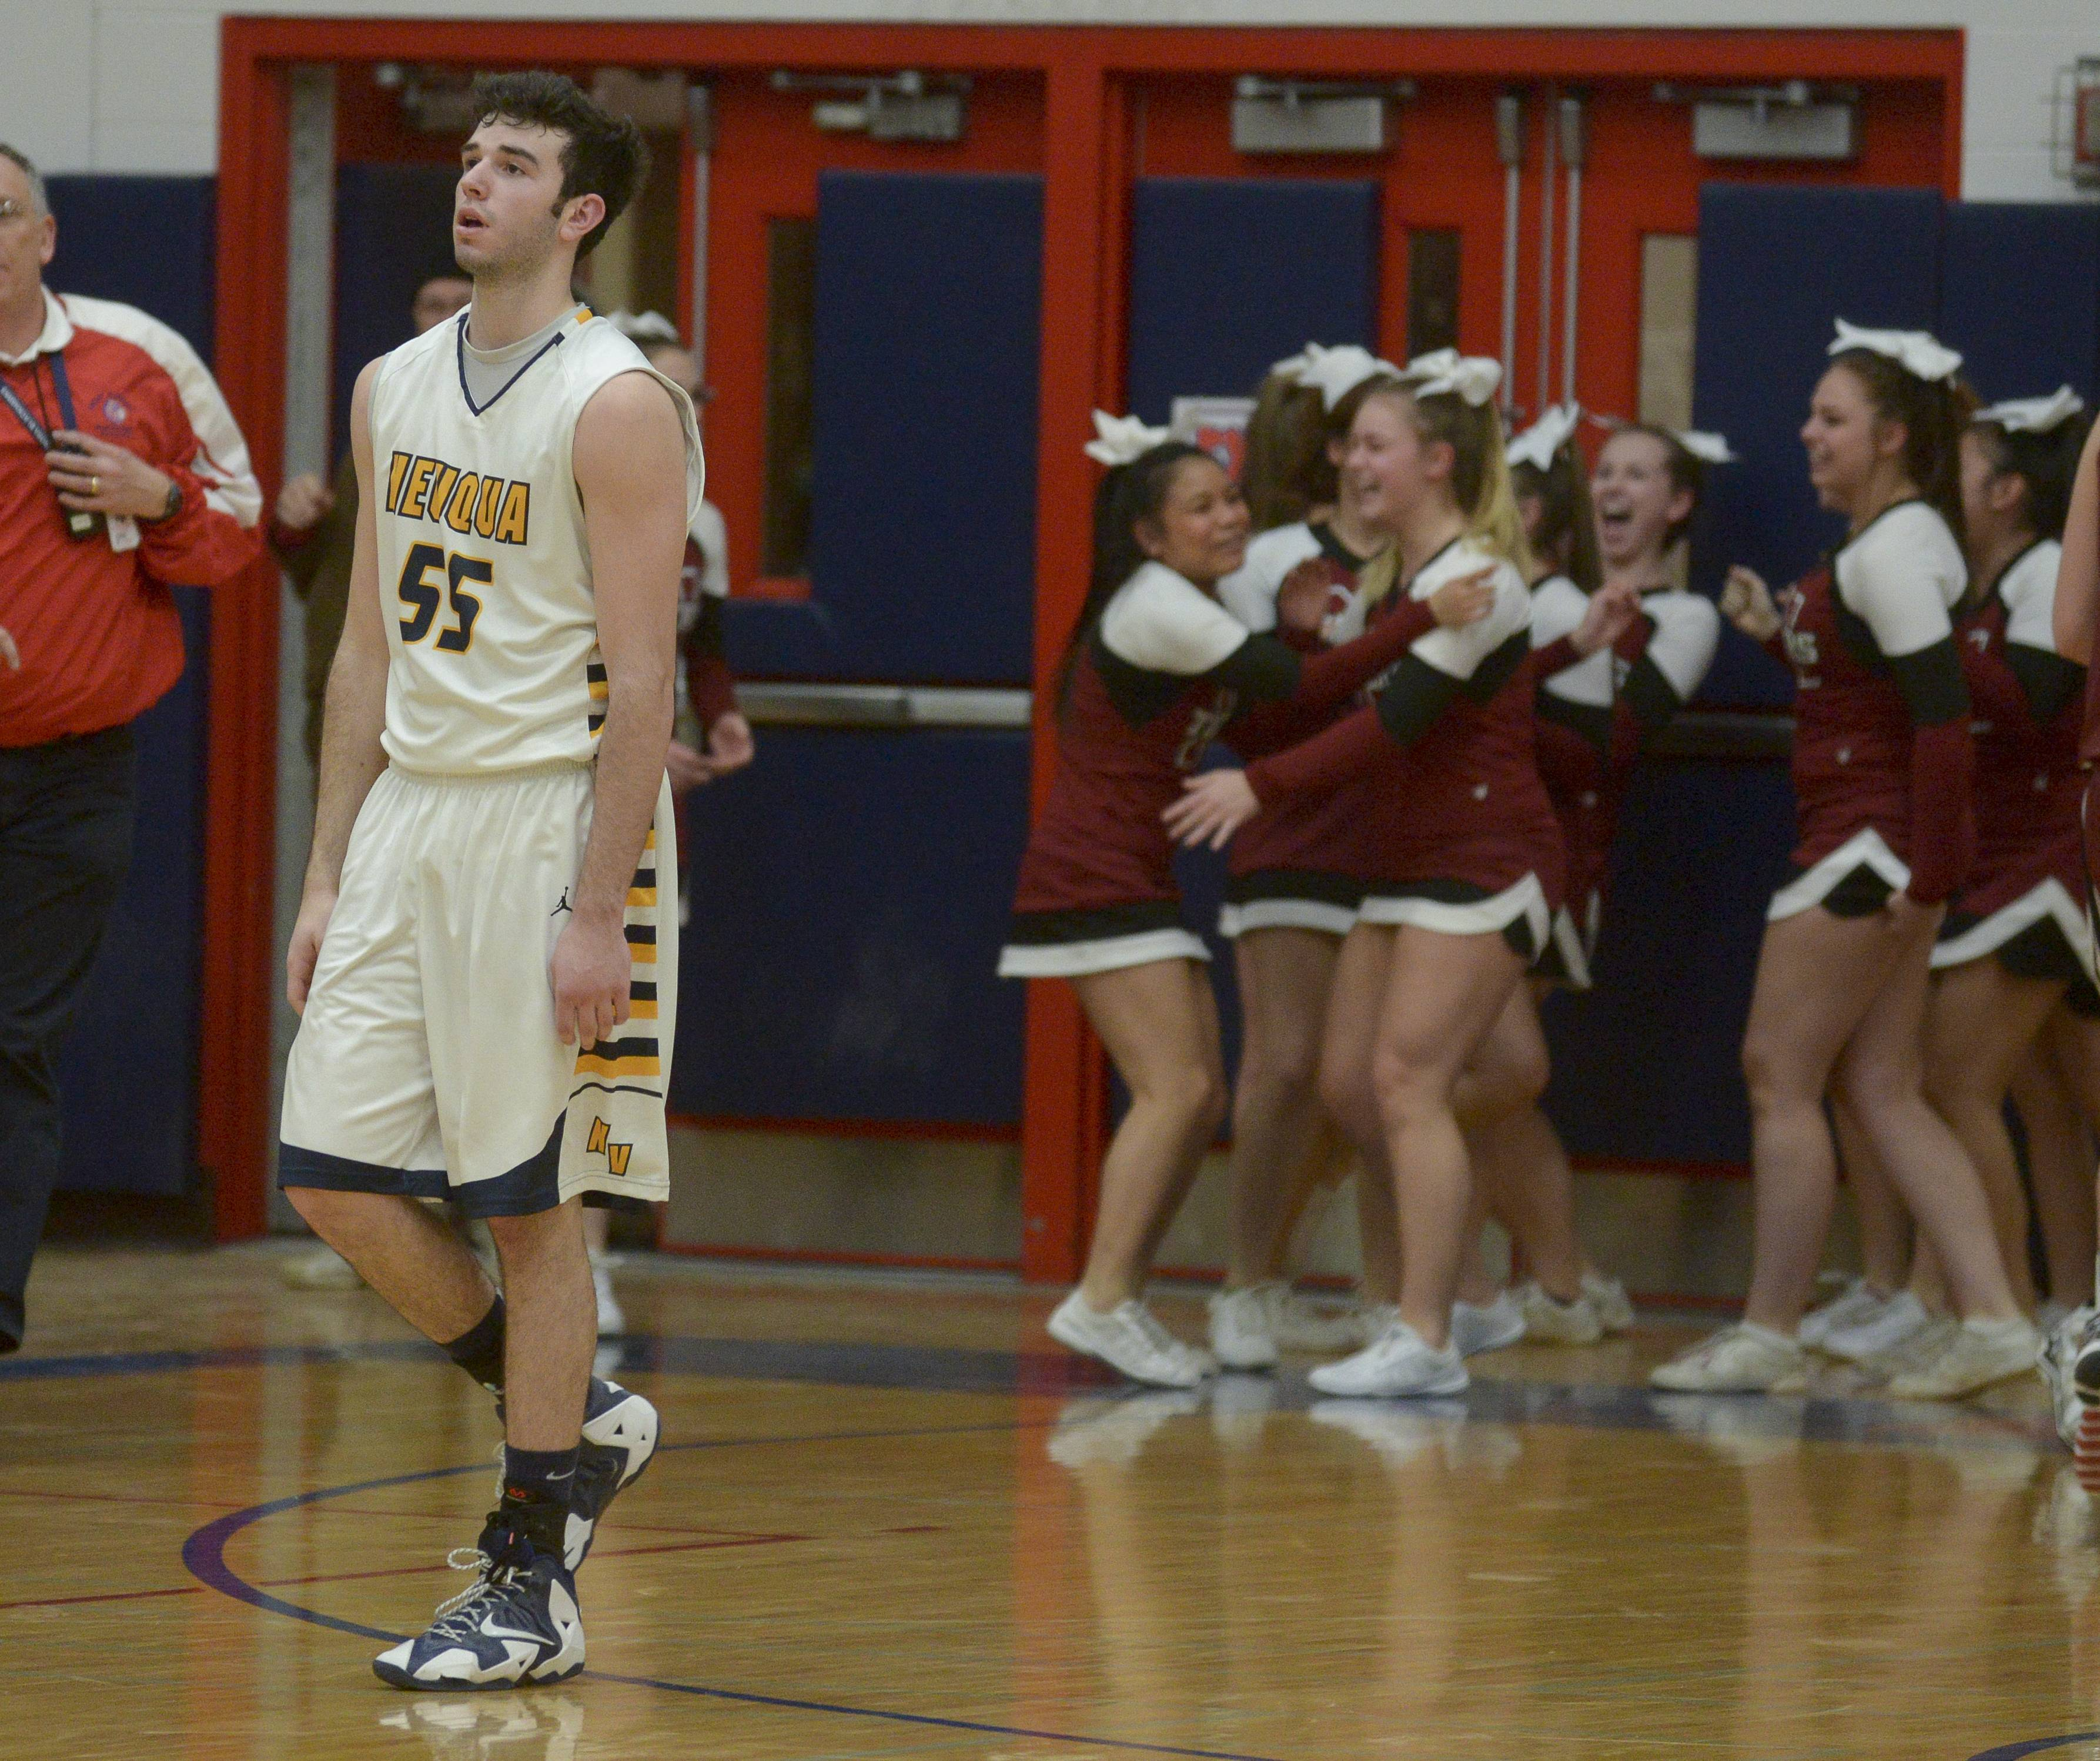 Neuqua Valley's Zach Incaudo walks off the court as  Plainfield North players celebrate.